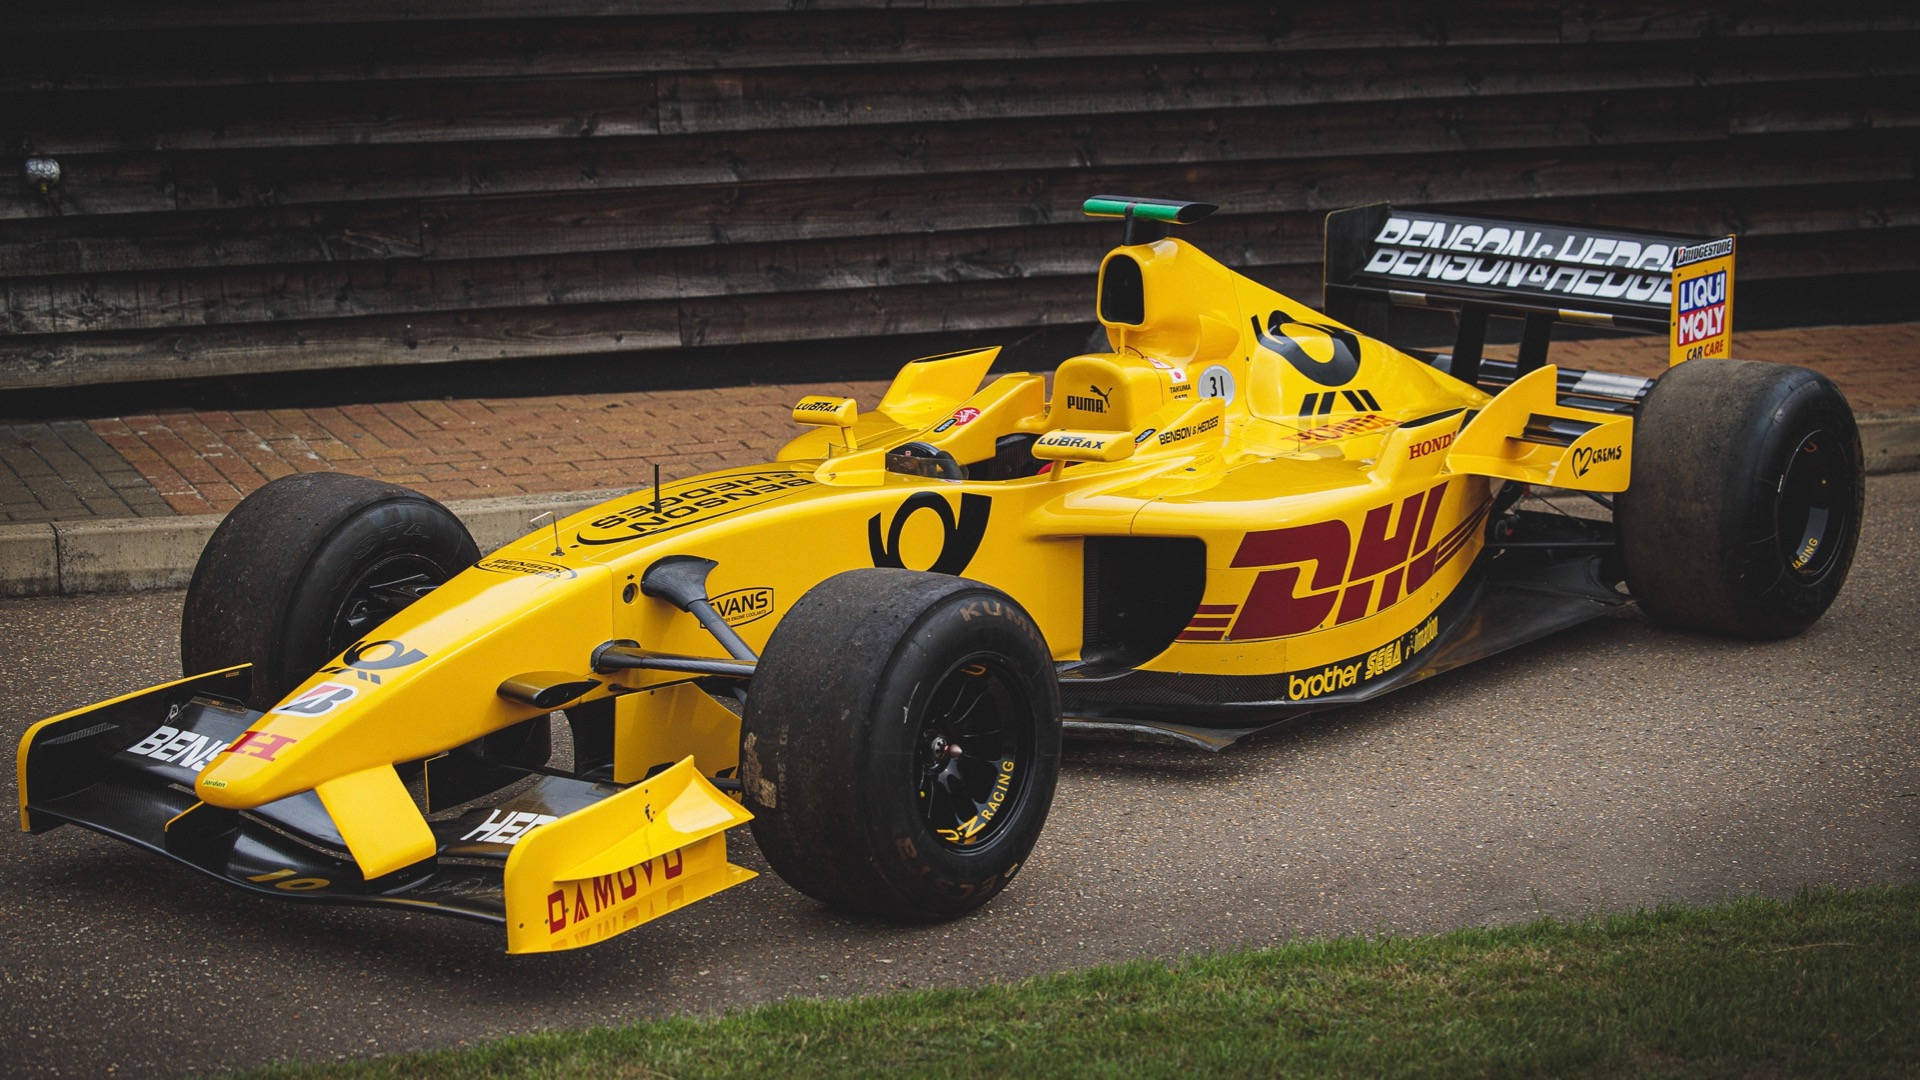 Driveable F1 car raced by Takuma Sato up for auction